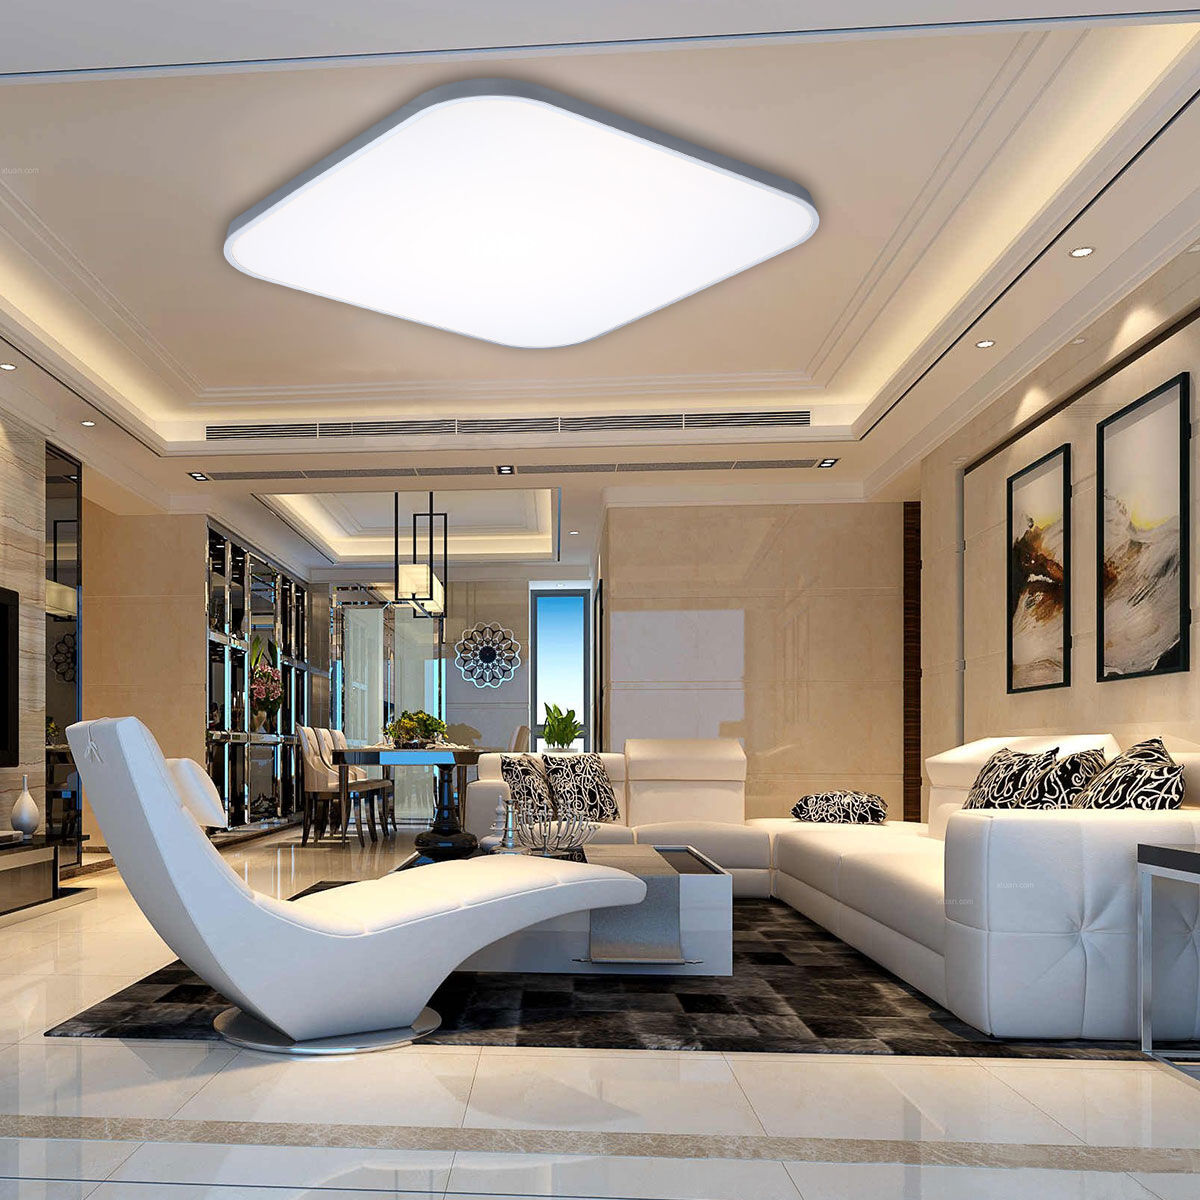 Bright 36w Led Ceiling Light Downlight Flush Mount Wall Kitchen Fixture Dimmable